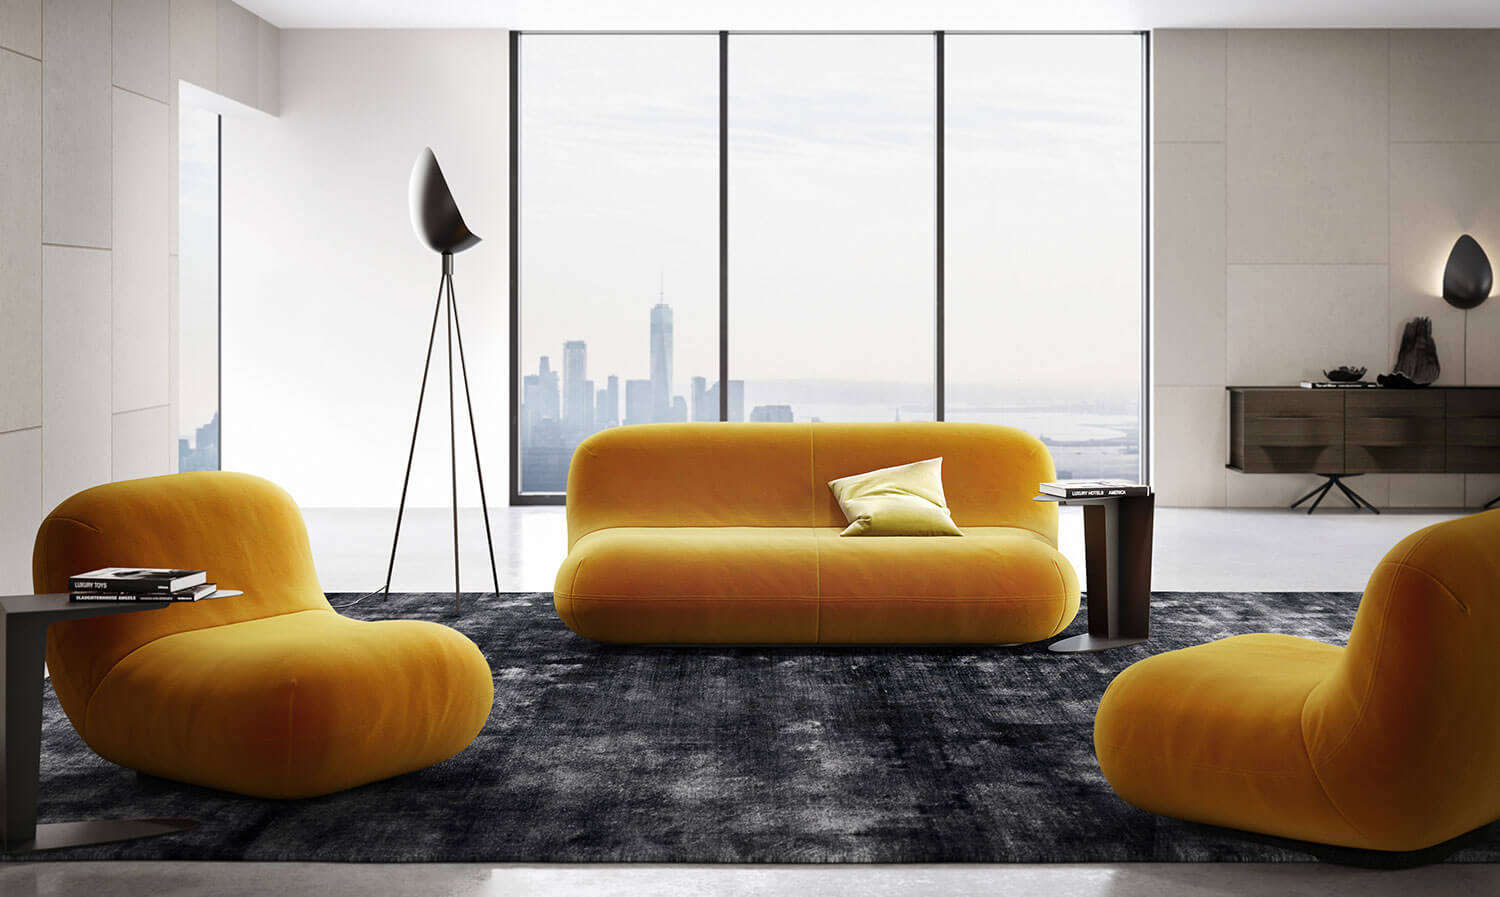 Soft curves sofa - Chelsea collection by Karim Rashid